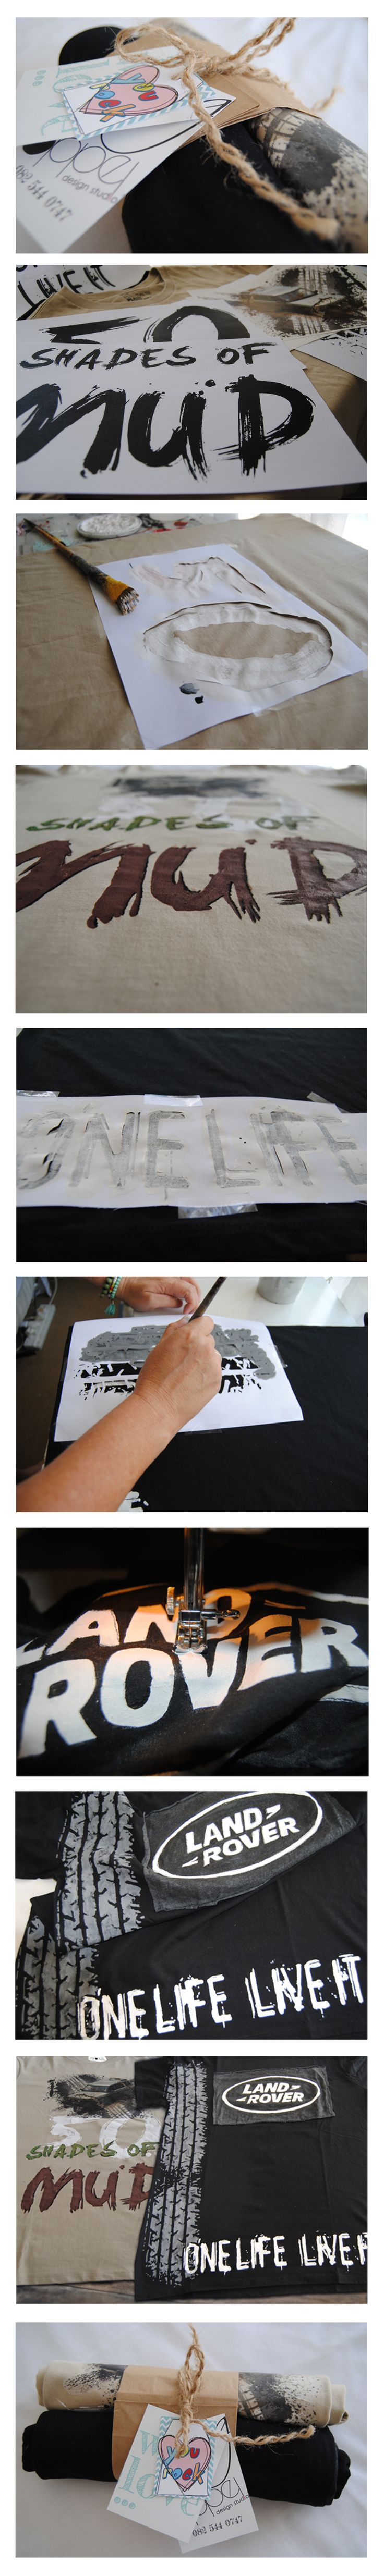 Oogappel Design Studio applies different techniques to create awesome tee's. We experiment with heat transfers, screen printing, appliqué and hand painting, depending on the project.  In this case I've experimented with some hand painted lettering. #paint #tshirts #stencilling #packaging #heat #transfer